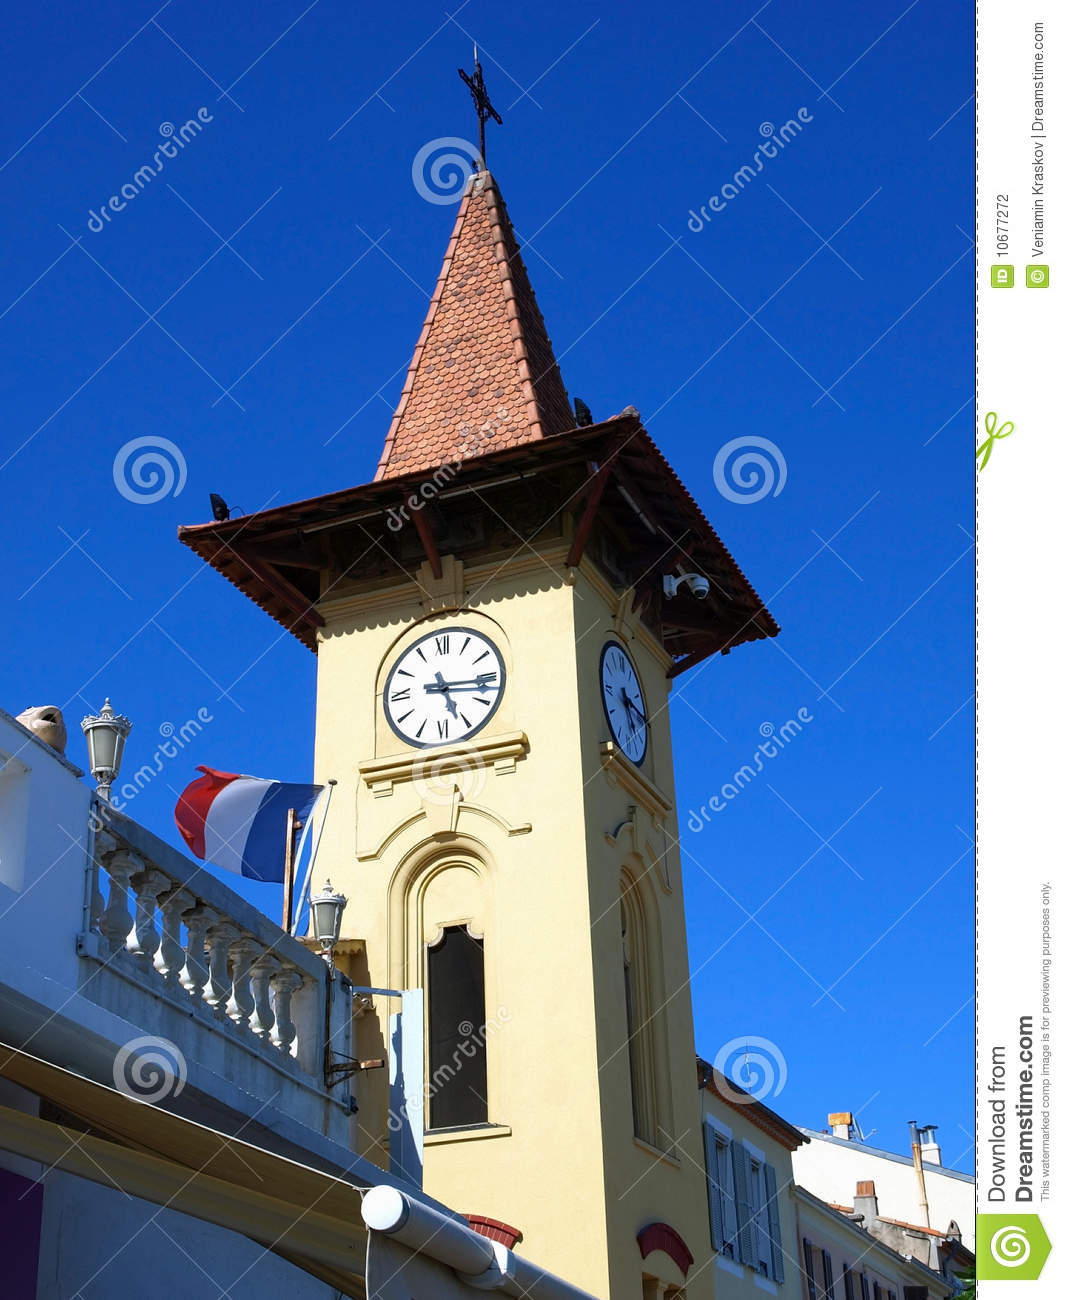 antibes clock tower stock photography image 10677272. Black Bedroom Furniture Sets. Home Design Ideas